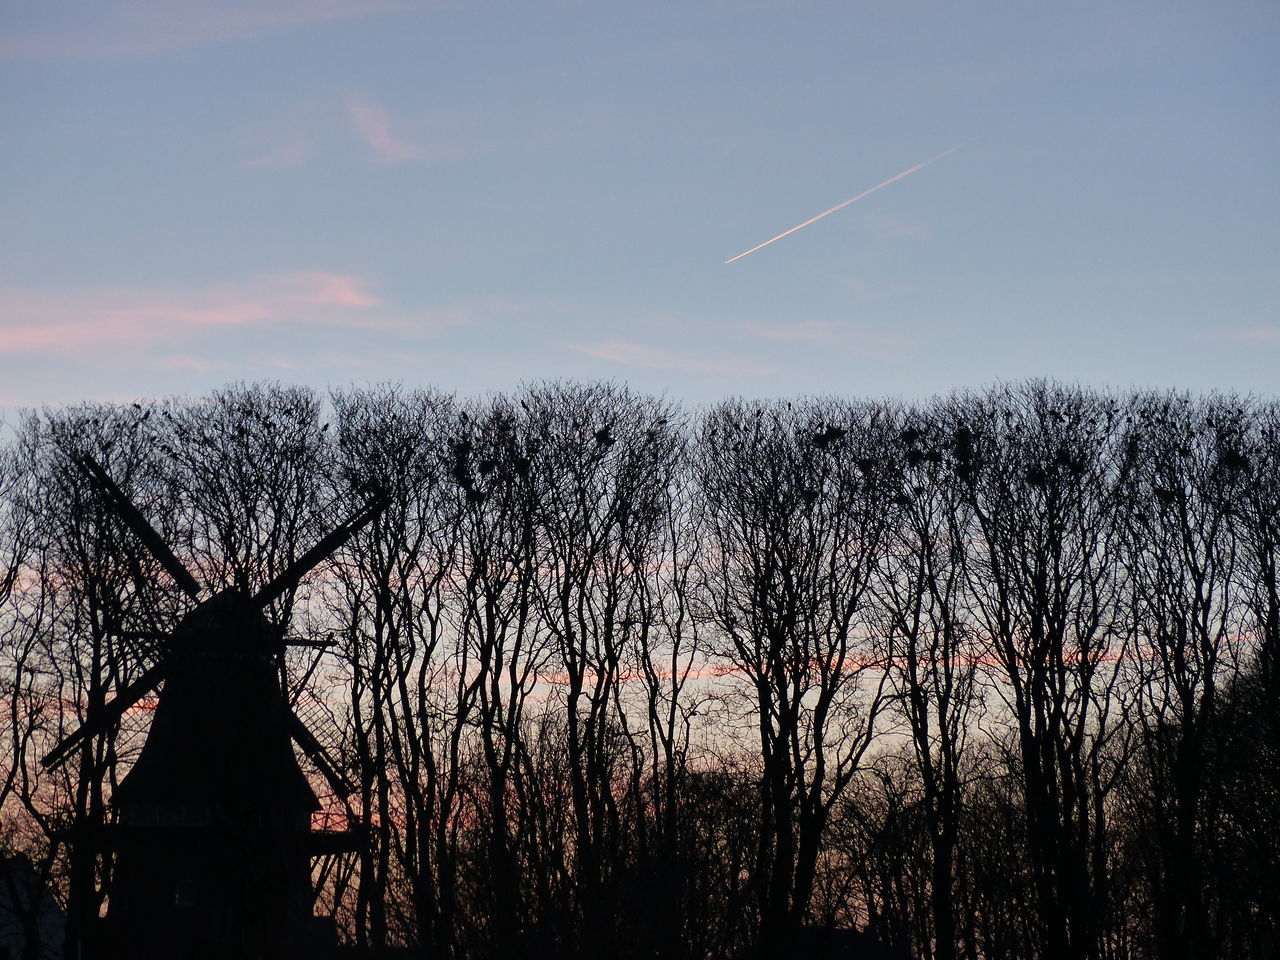 nature, bare tree, tree, silhouette, beauty in nature, sunset, outdoors, scenics, tranquility, no people, sky, vapor trail, day, branch, contrail